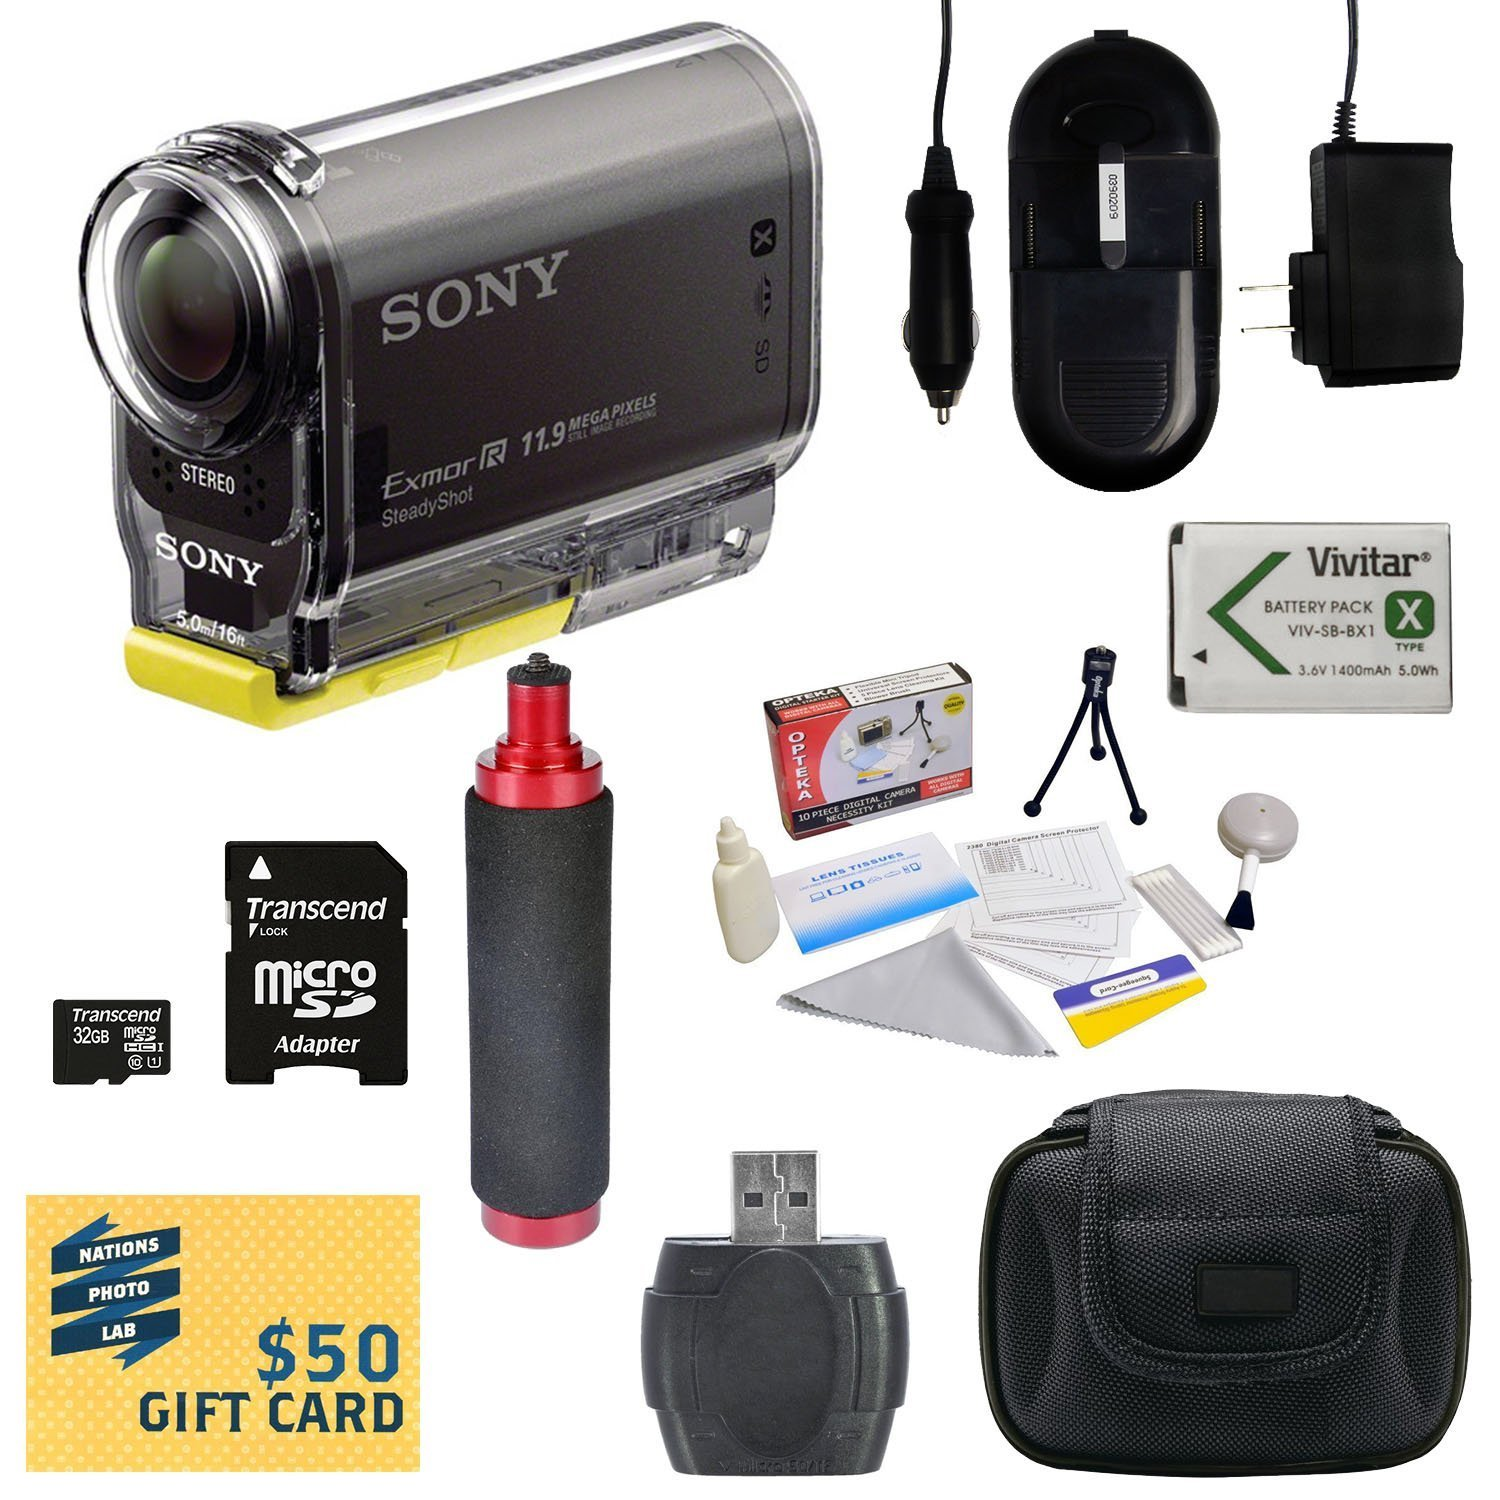 Sony HDR-AS30V HD POV Action Camcorder with 47stPhoto Advanced Accessory Kit Includes - 32GB High-Speed Micro SD Card + Card Reader + NP-BX1 1400mAh Li-ion Battery + AC/DC Battery Charger + Stabilizing Handgrip + Hard Shell Carrying Case + Lens Cleaning K by 47th Street Photo